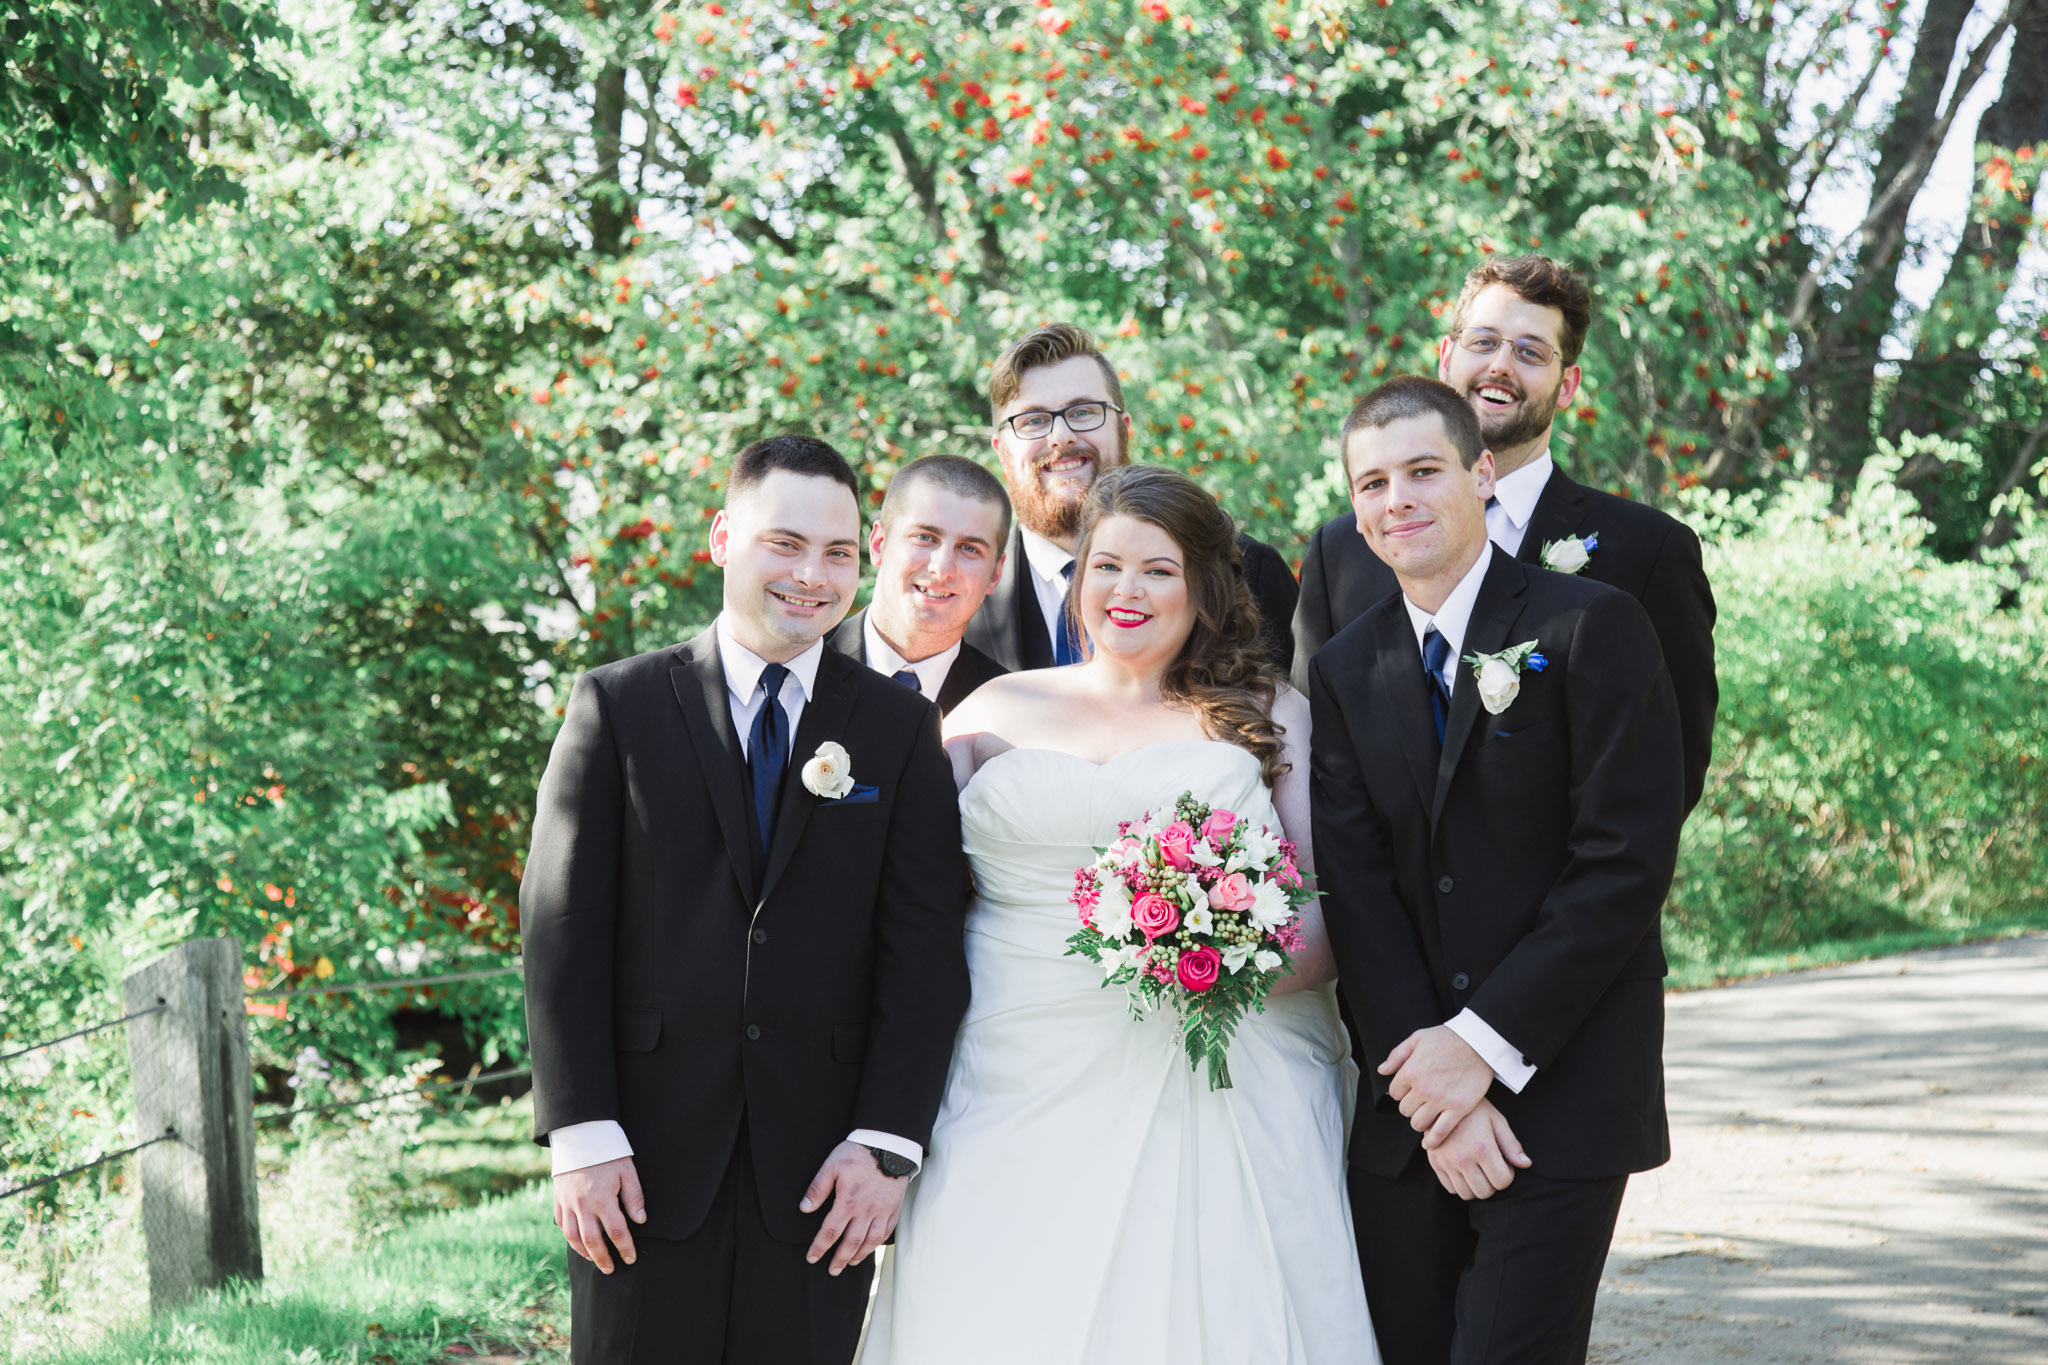 Image of bride posing with groomsmen party